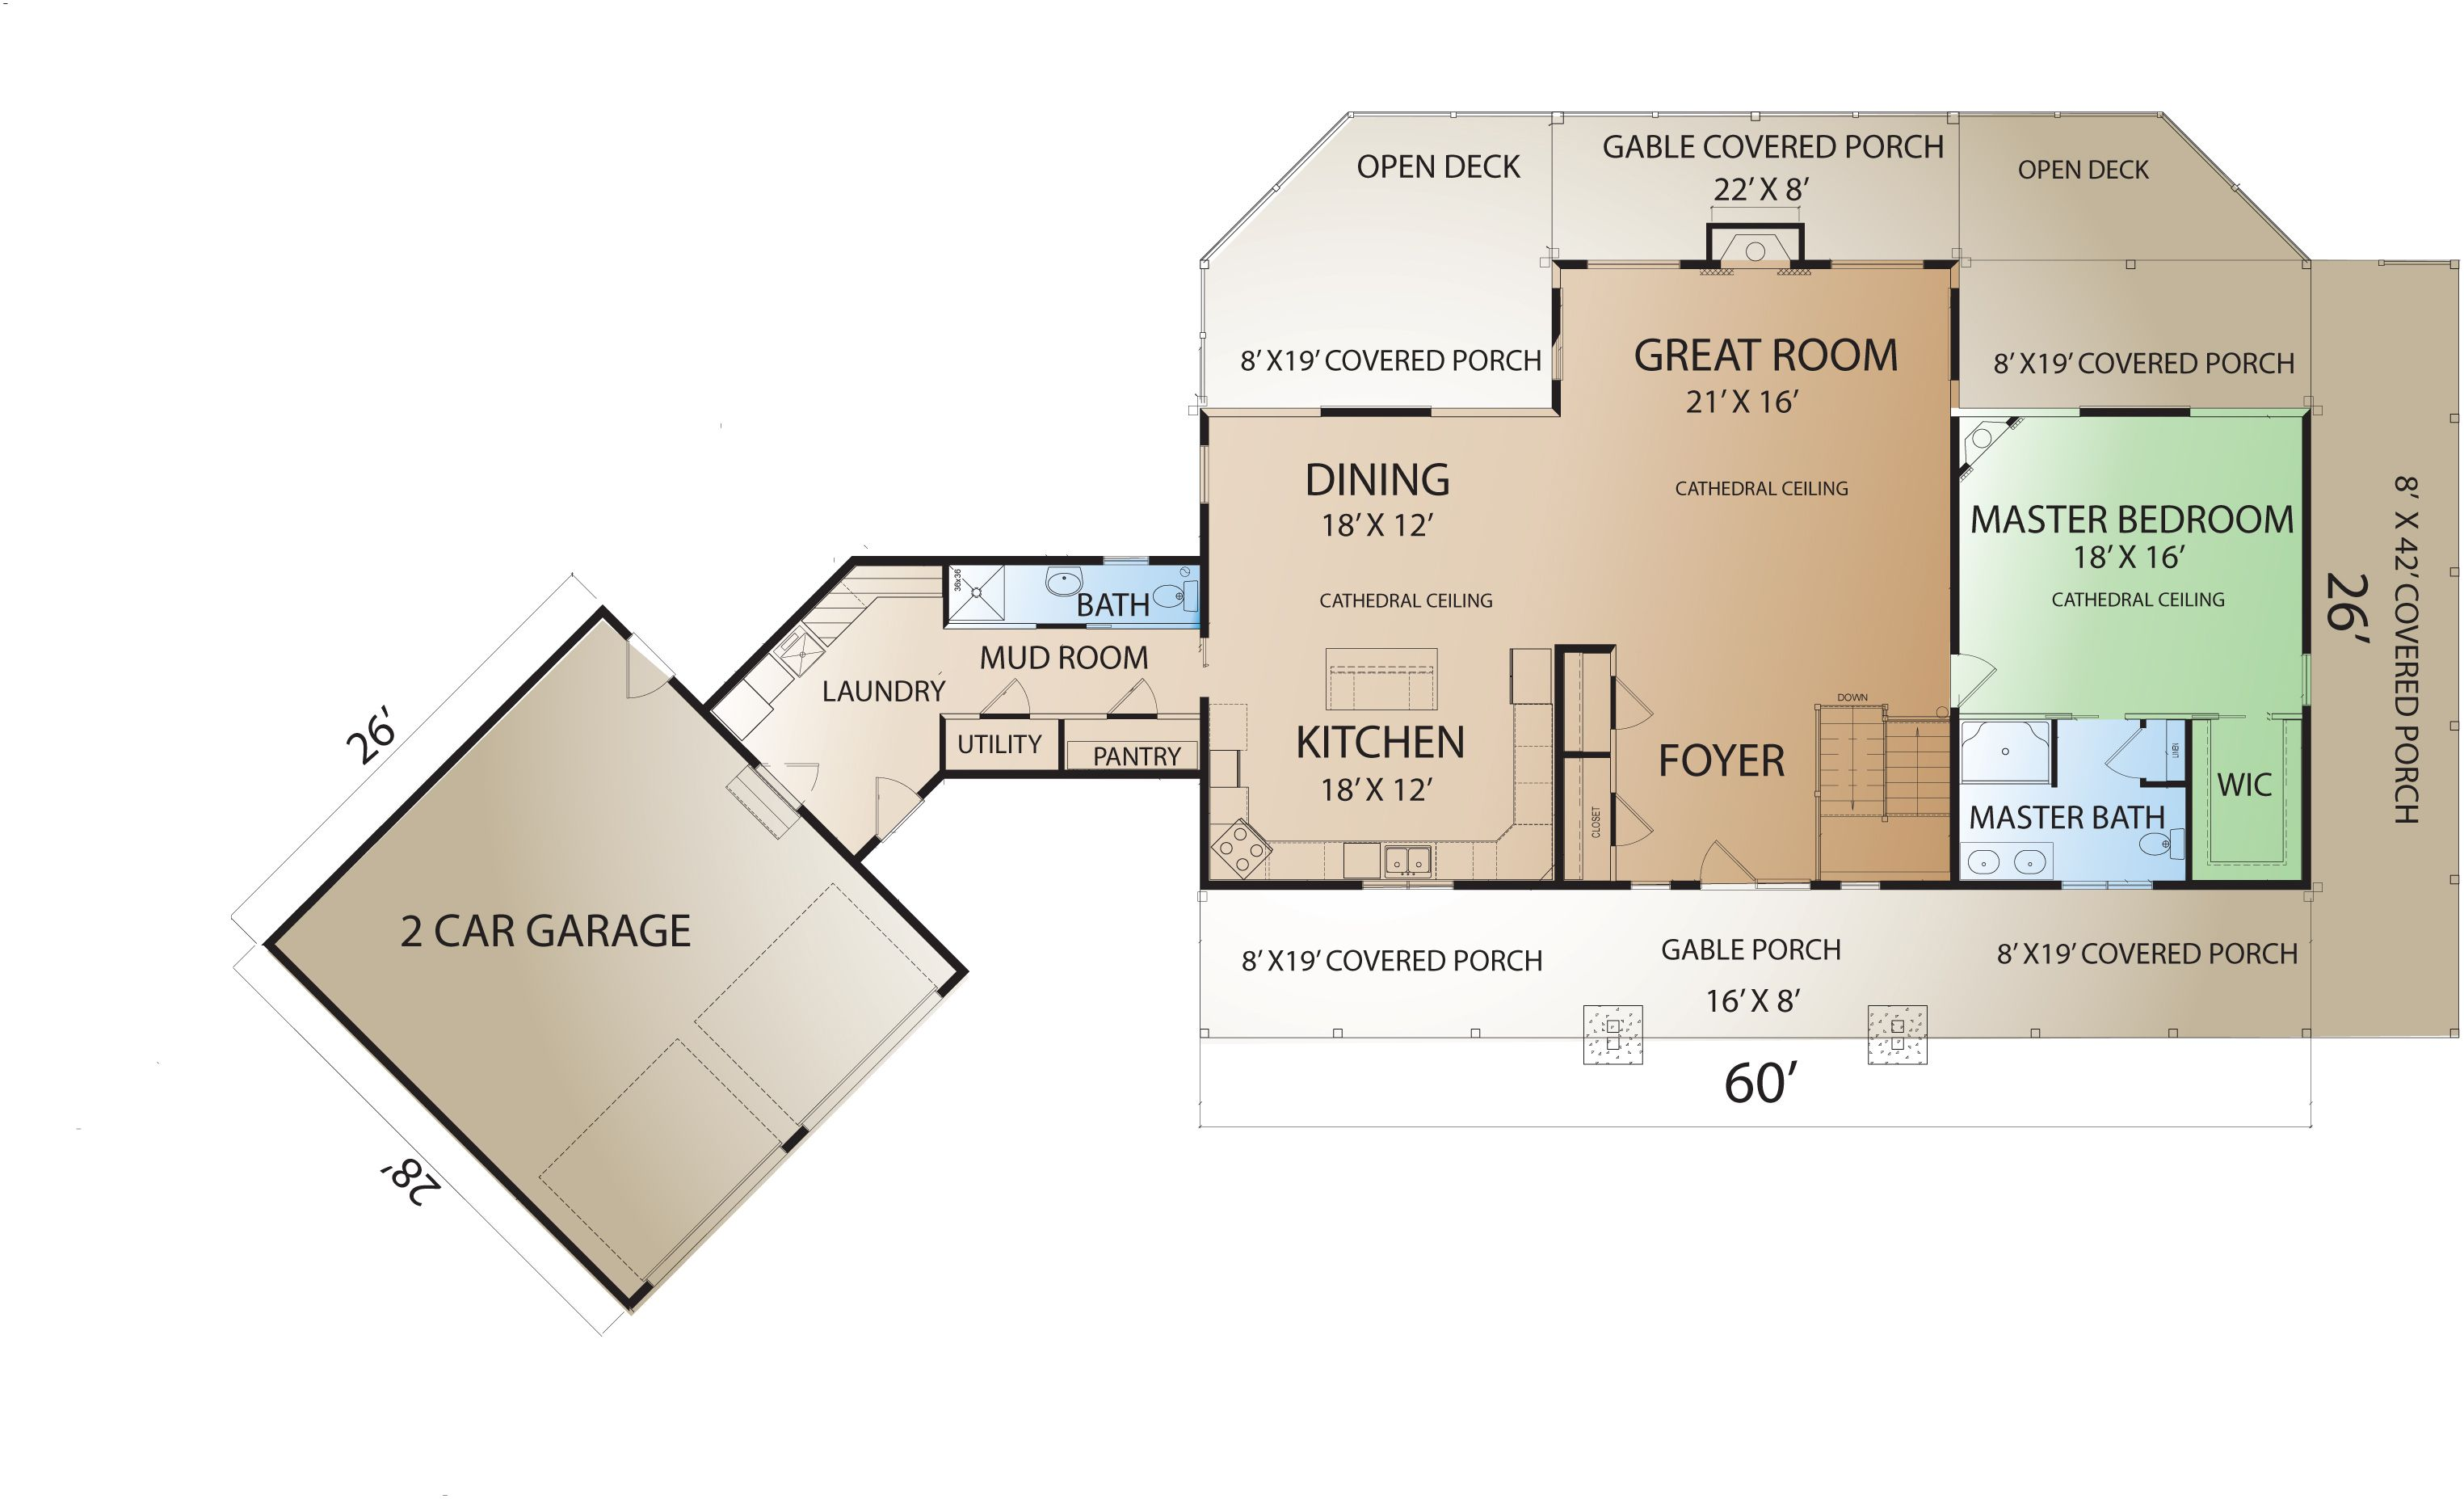 Floor plans attached garage countrymark prairieranch fp for House plans with garage attached by breezeway